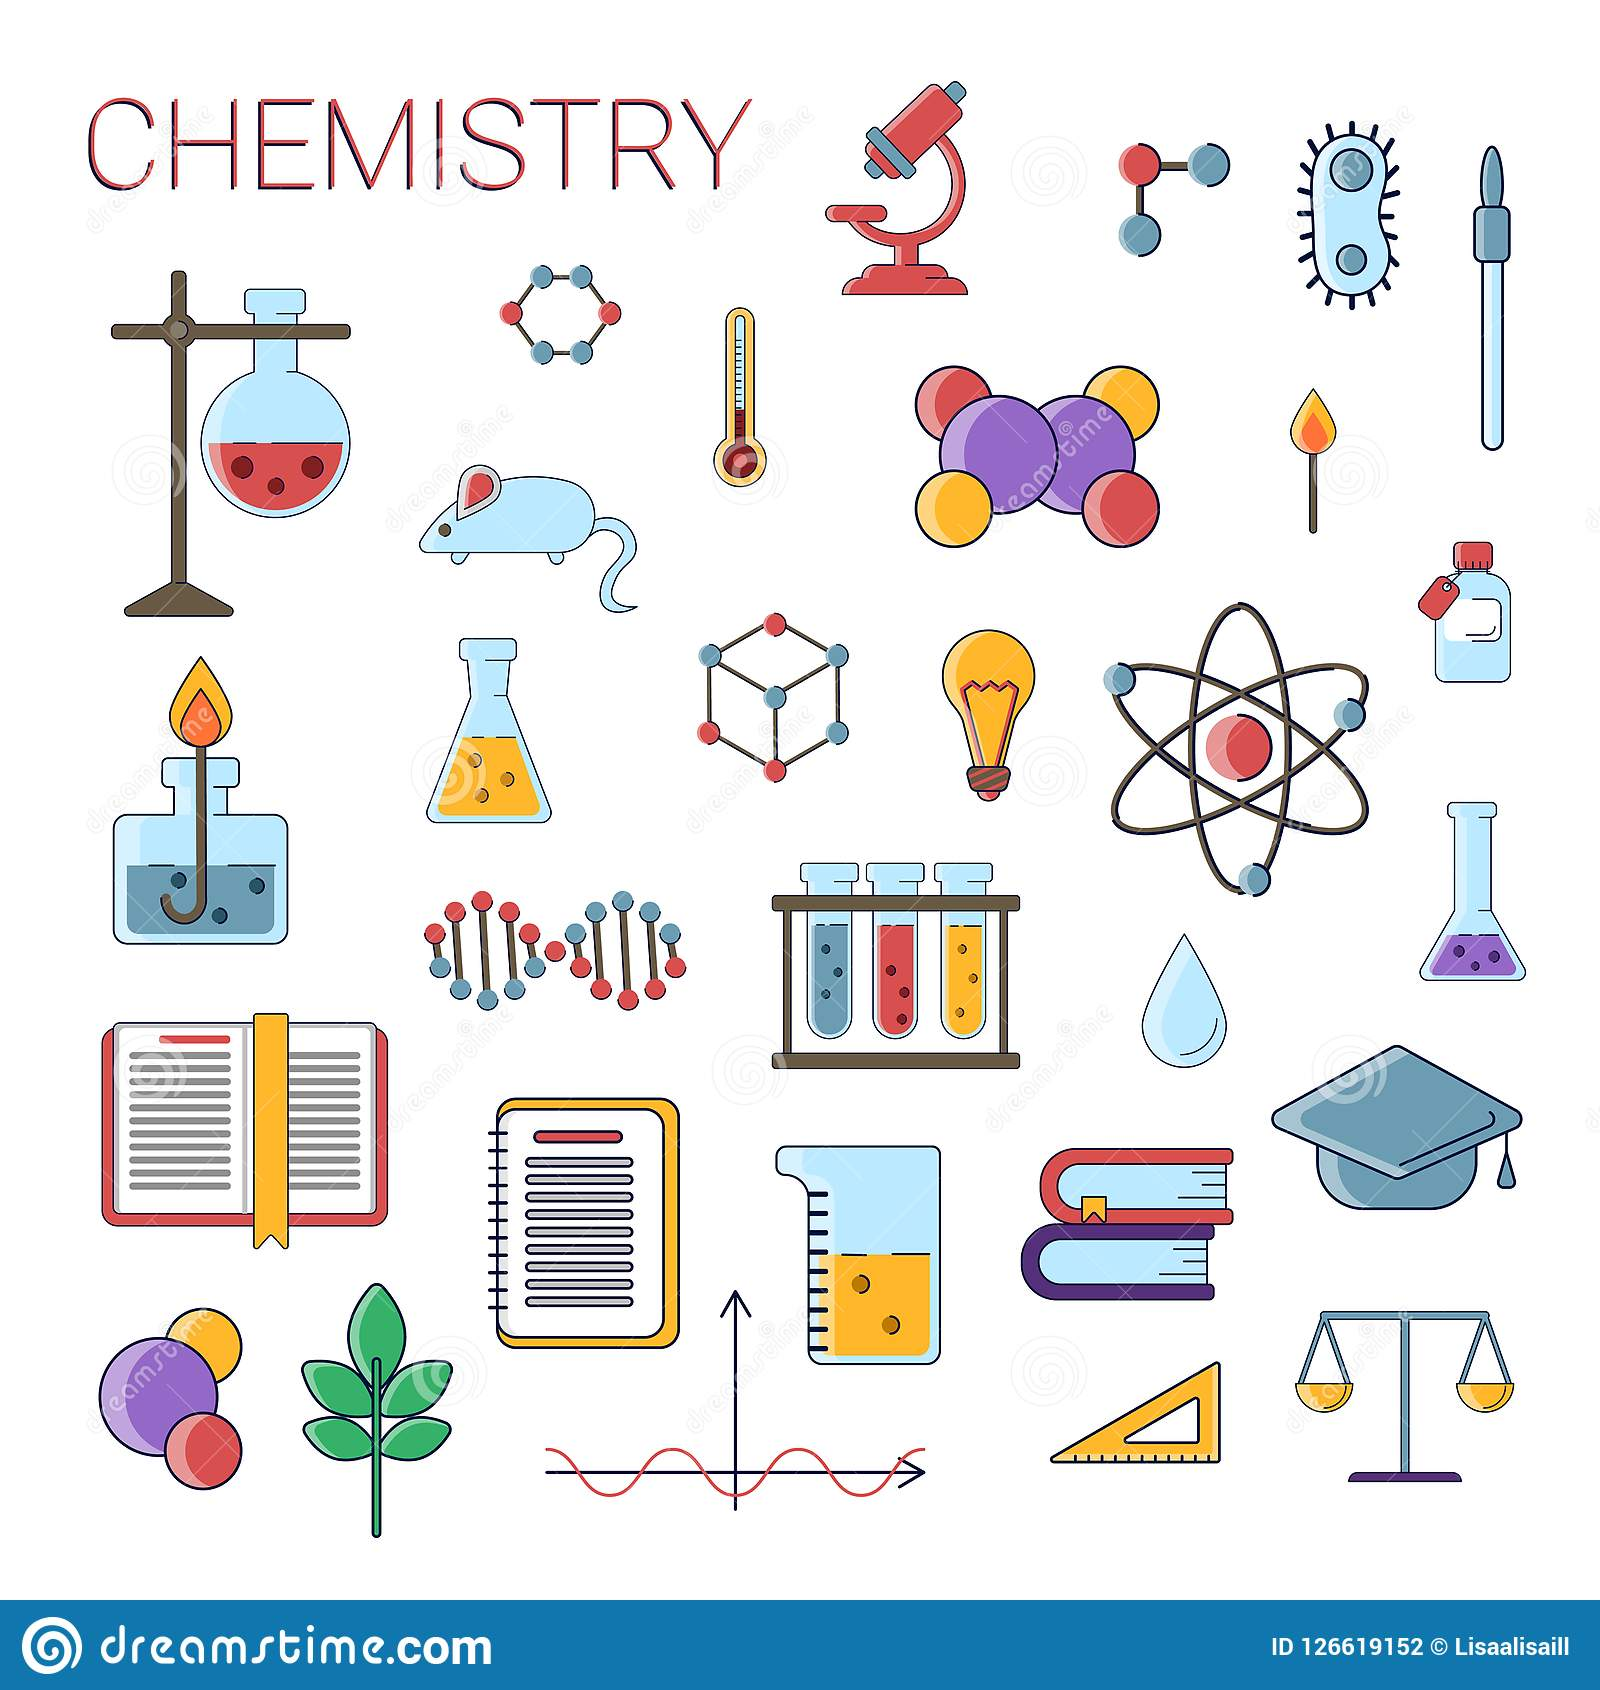 Set of scientific chemistry vector flat icons, Chemistry education symbols in colored cute design with chemistry